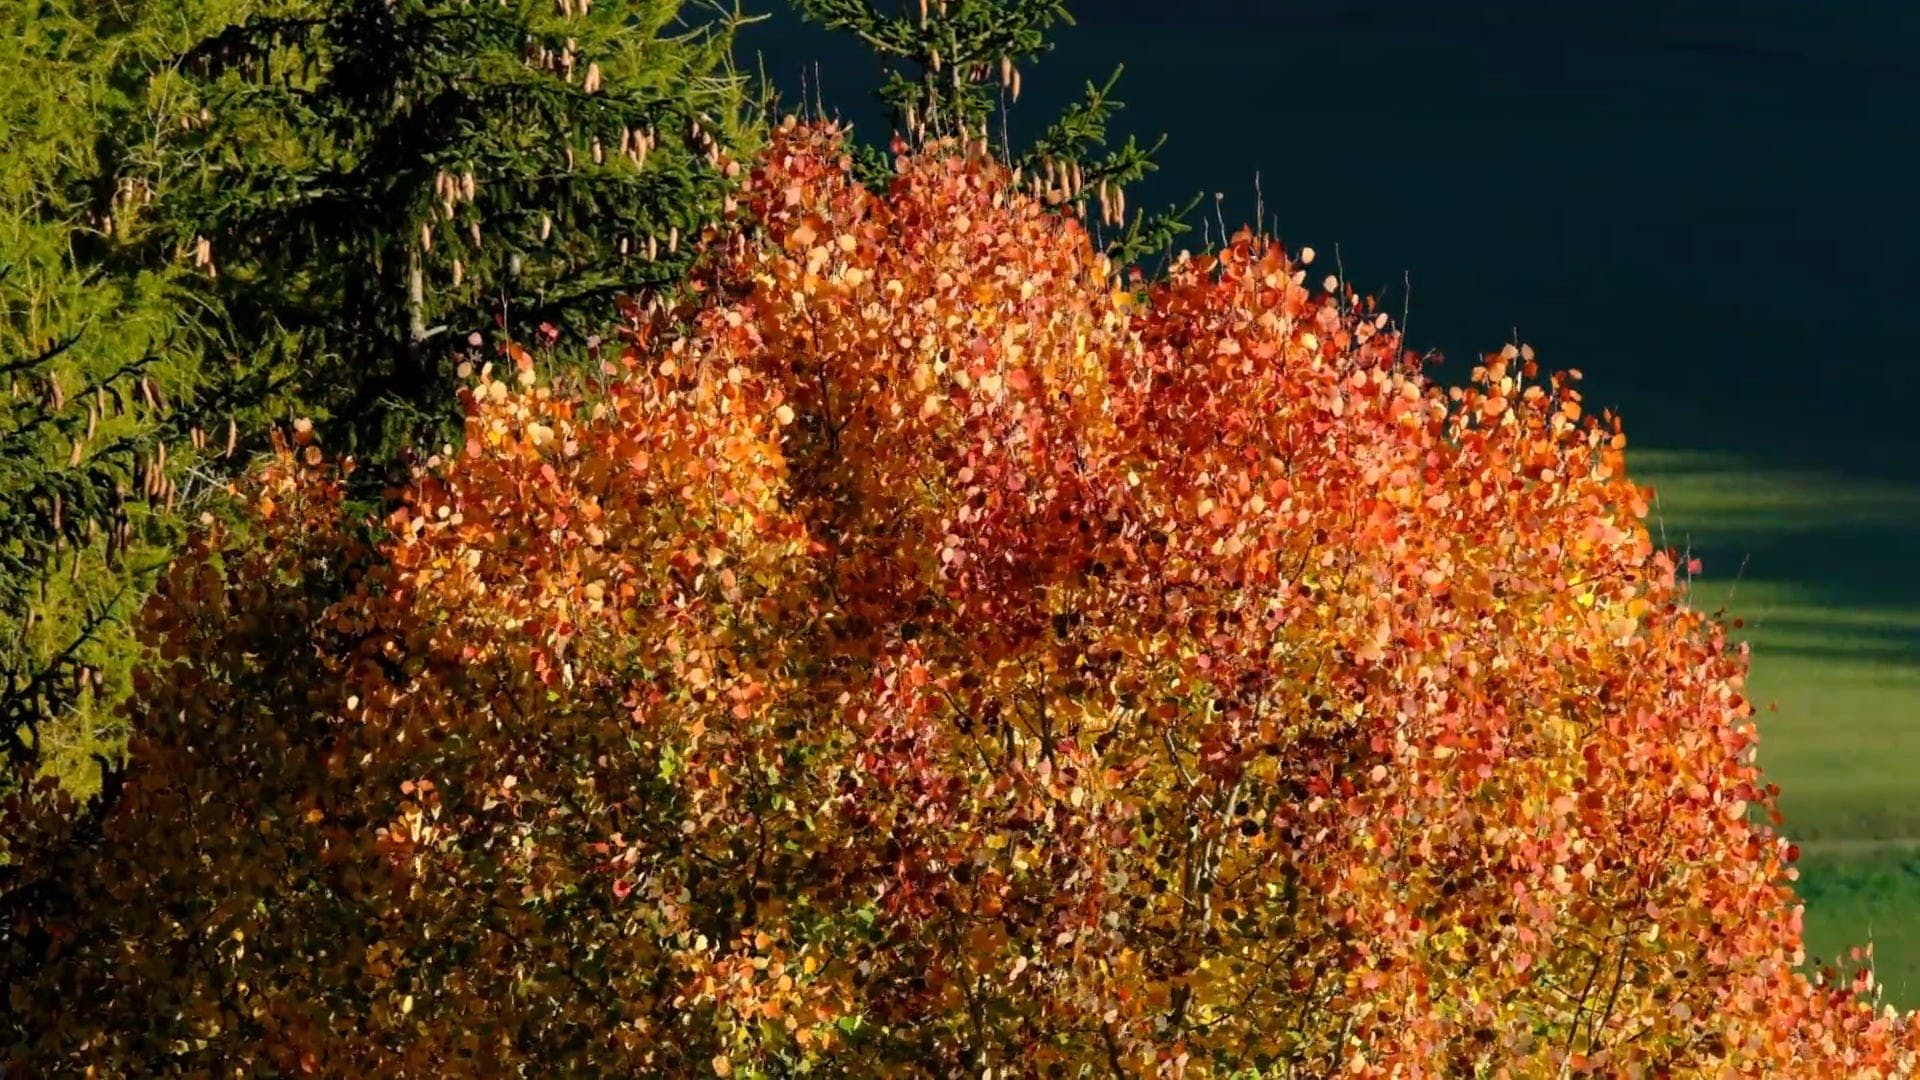 A Red Leafed Tree